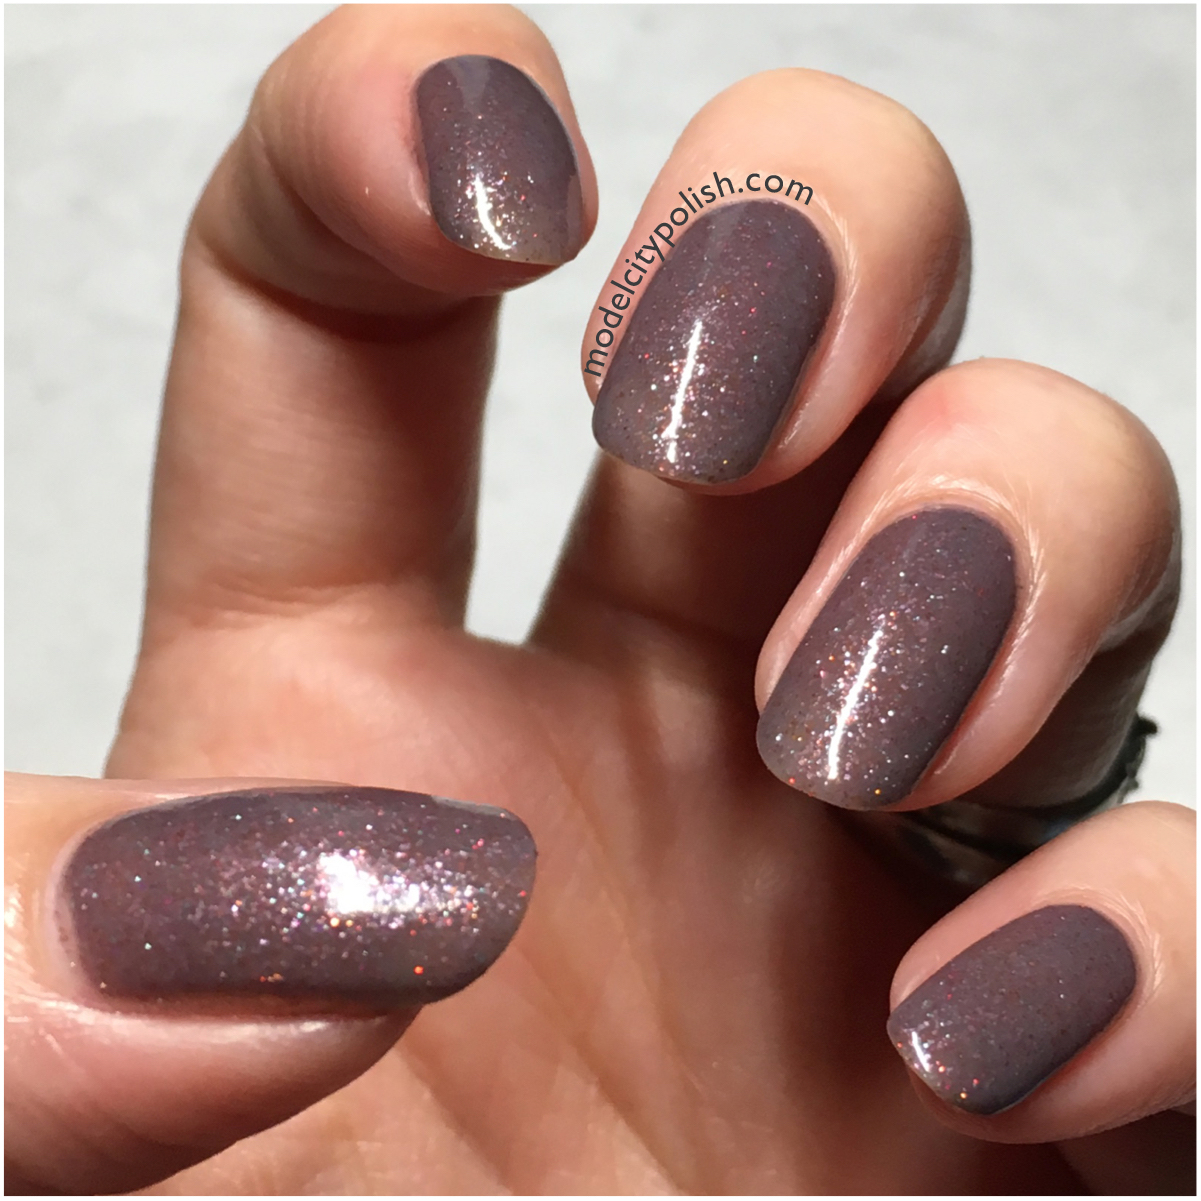 Lastly For The Winter Collection We Have Firethorn This Is A Deep Wine Red Jelly Filed With Gold Pink Yellow And Iridescent Glitters